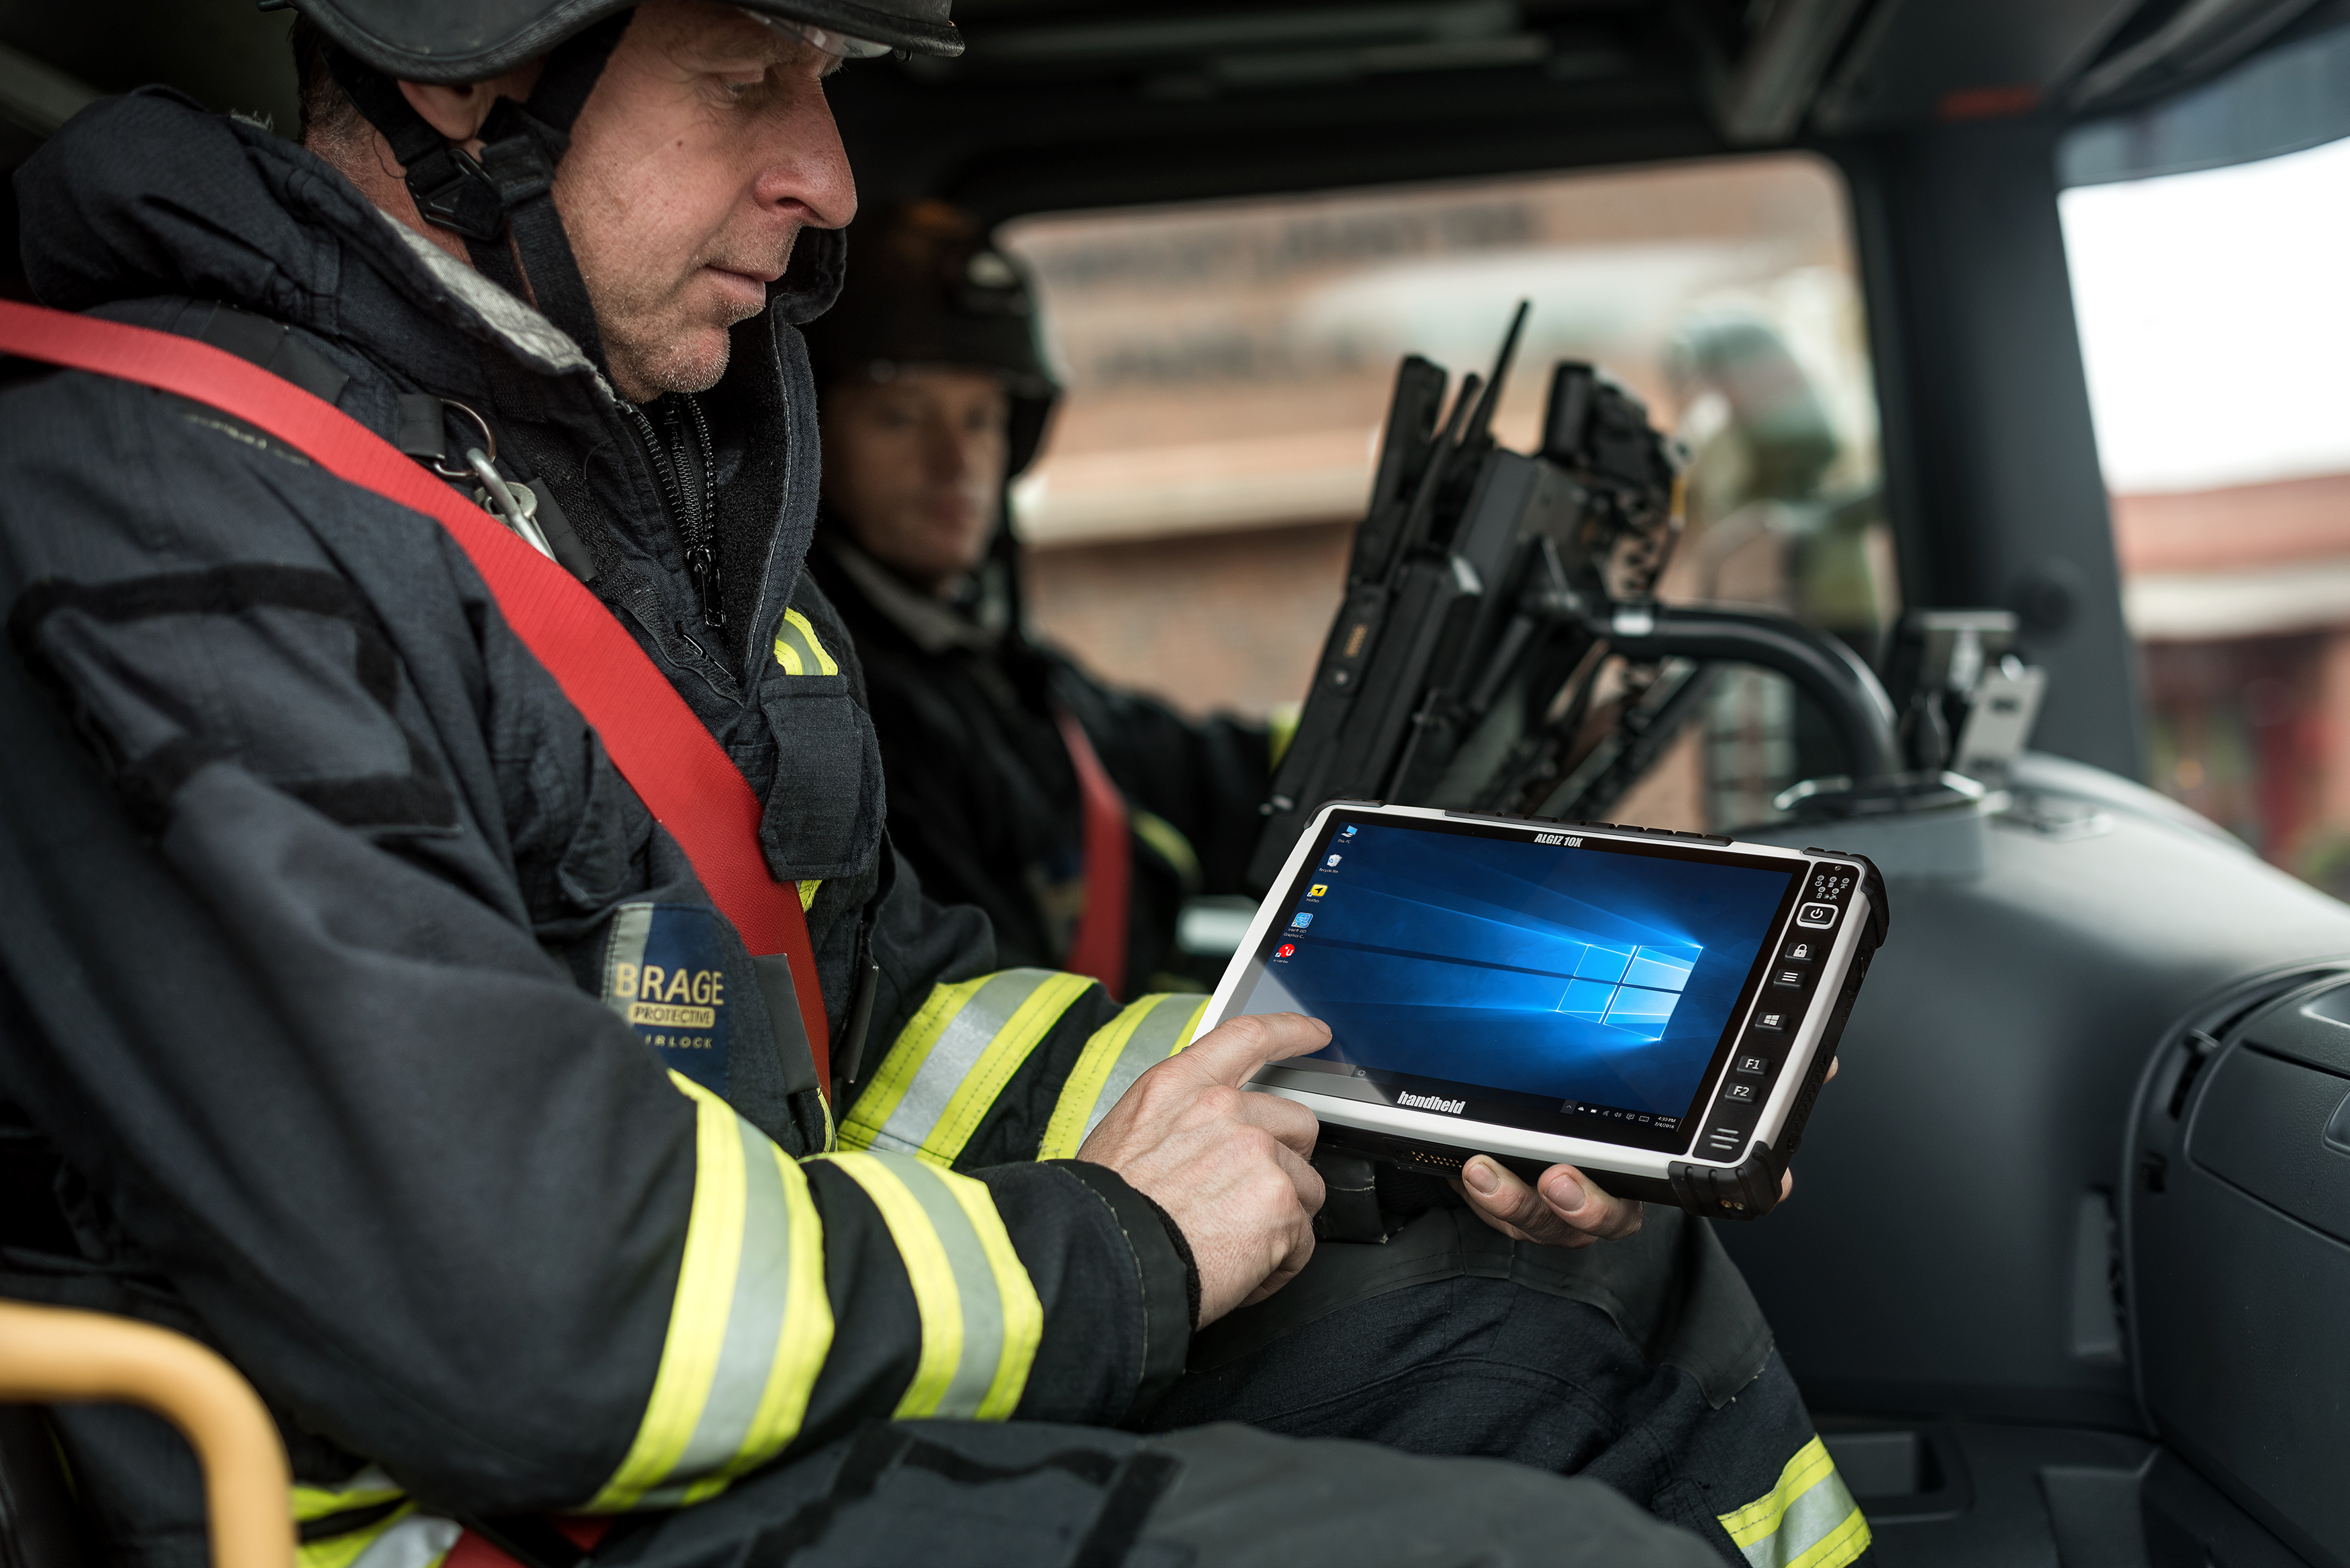 ALGIZ-10X-rugged-tablet-navigation-windows-10-PCAP.jpg